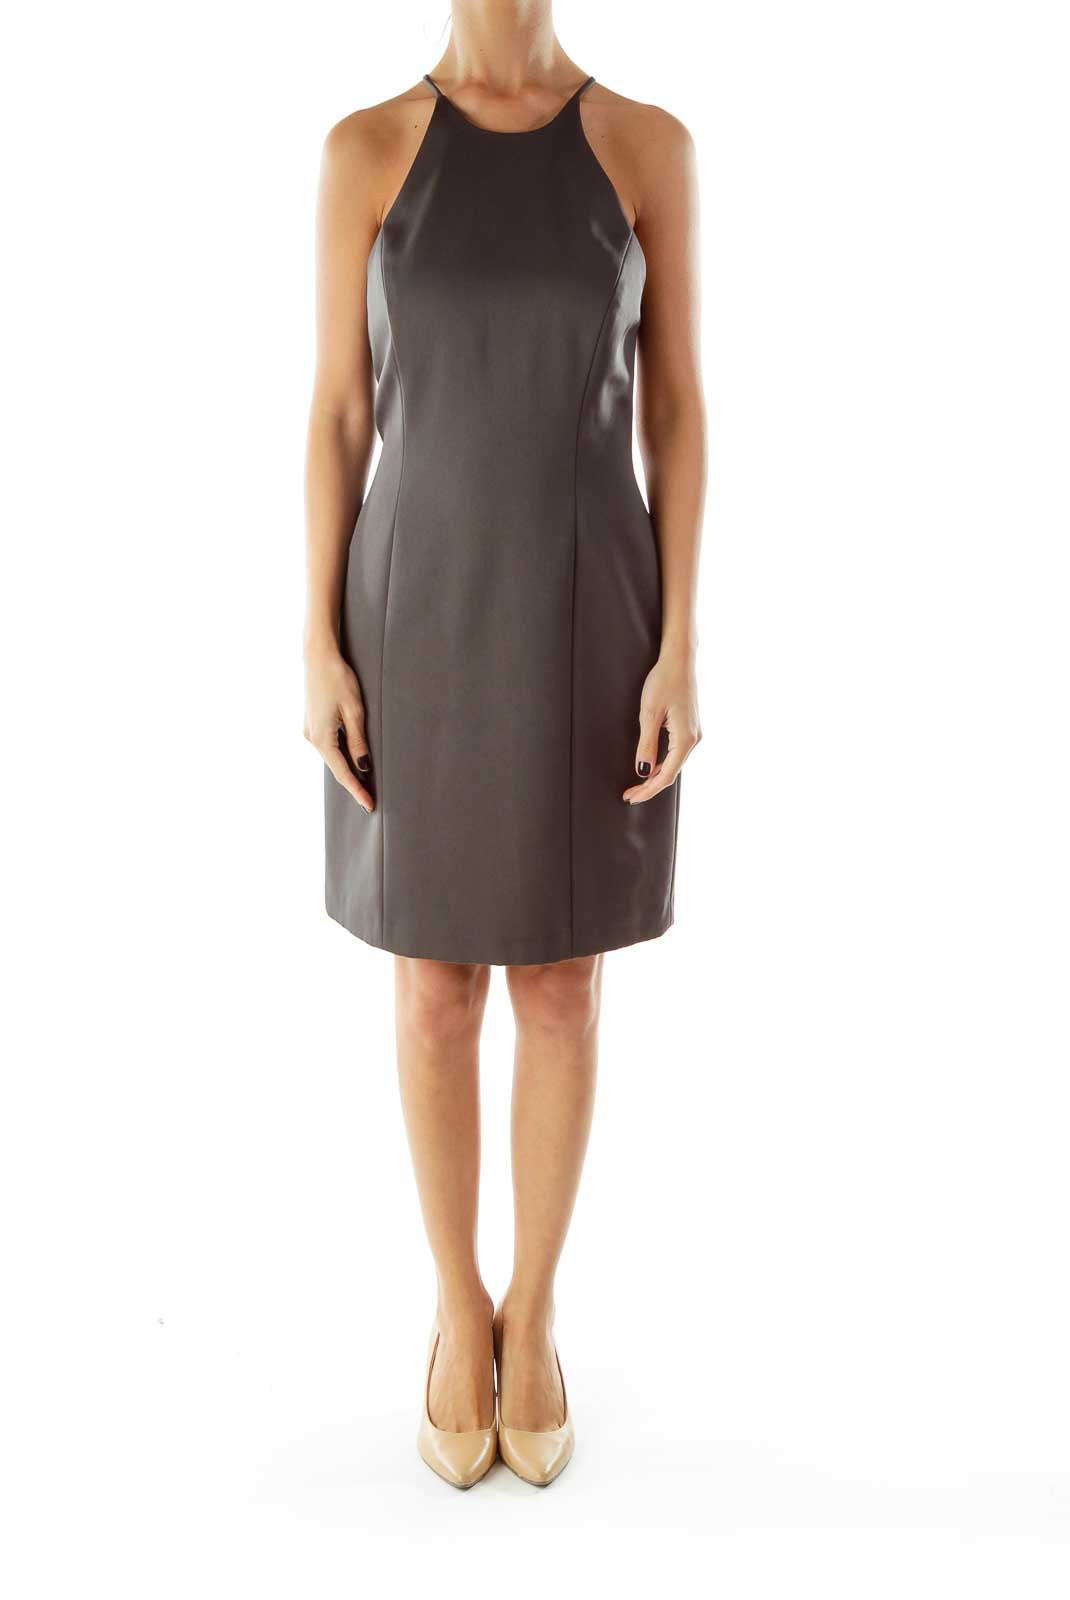 Gray A-Line Spaghetti Strap Cocktail Dress